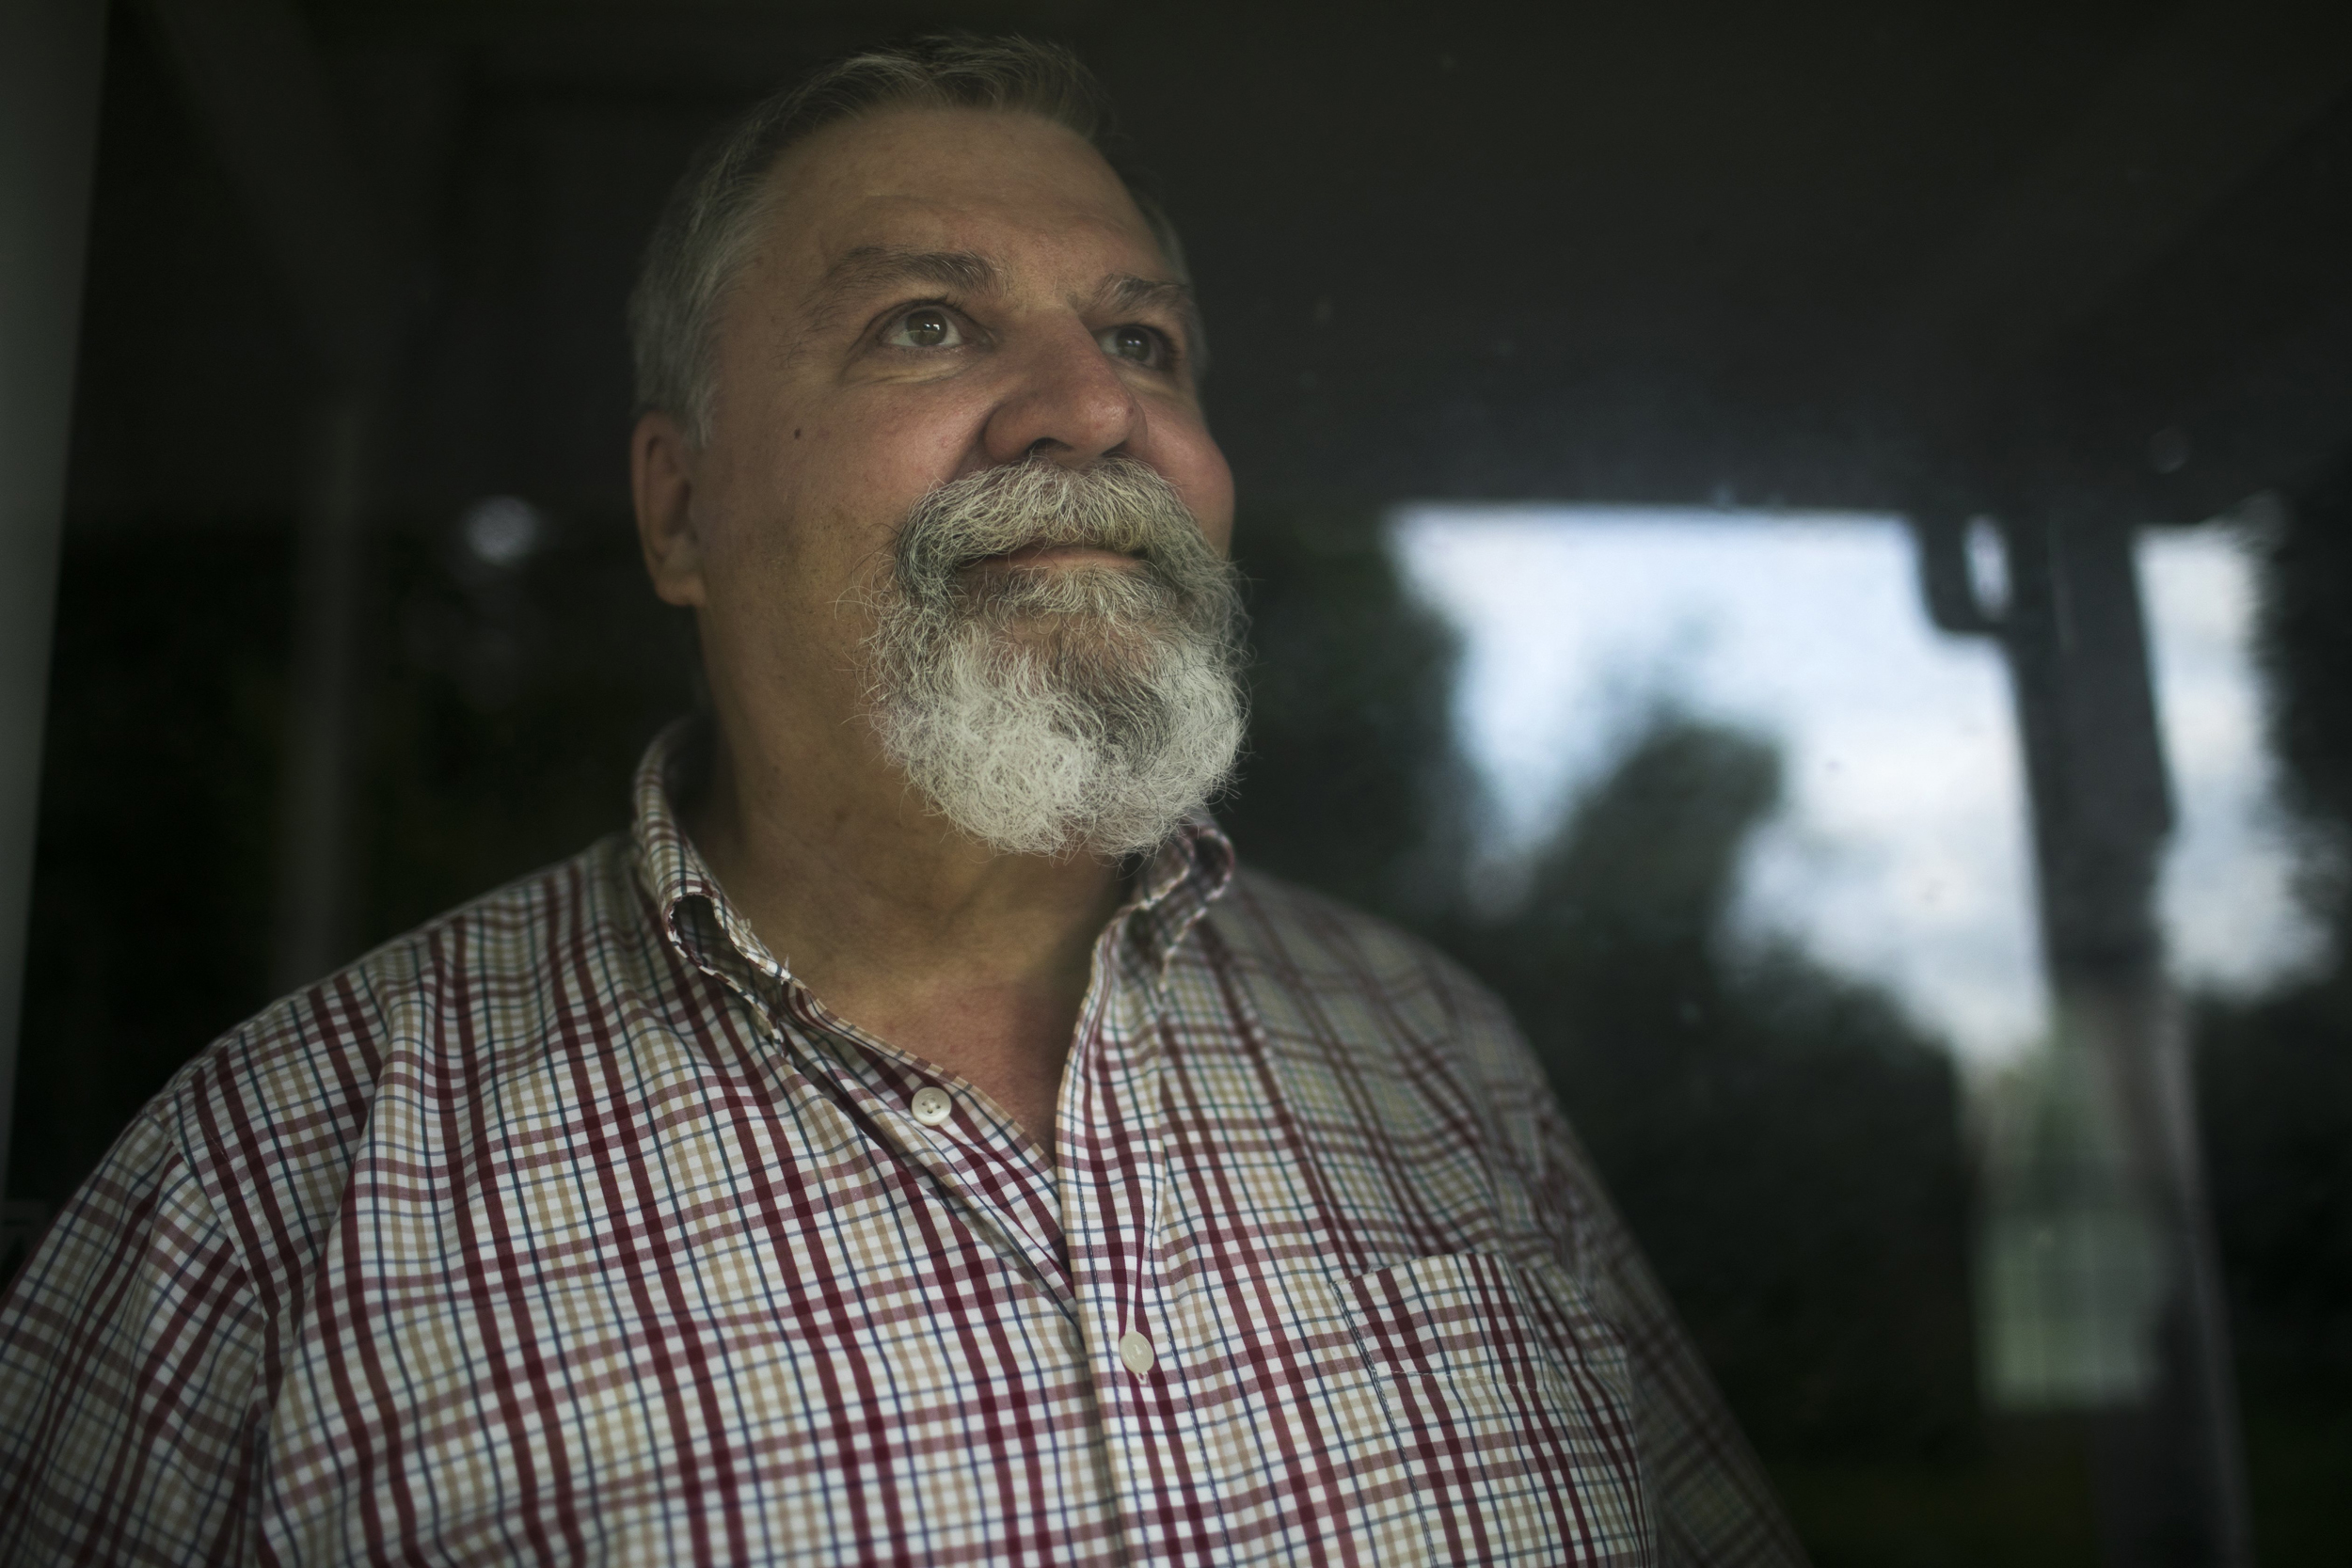 Image: Larry Harmon stands in his home in Kent, Ohio, on Aug. 4, 2017. Harmon was removed from the voting rolls after not voting in the last election.